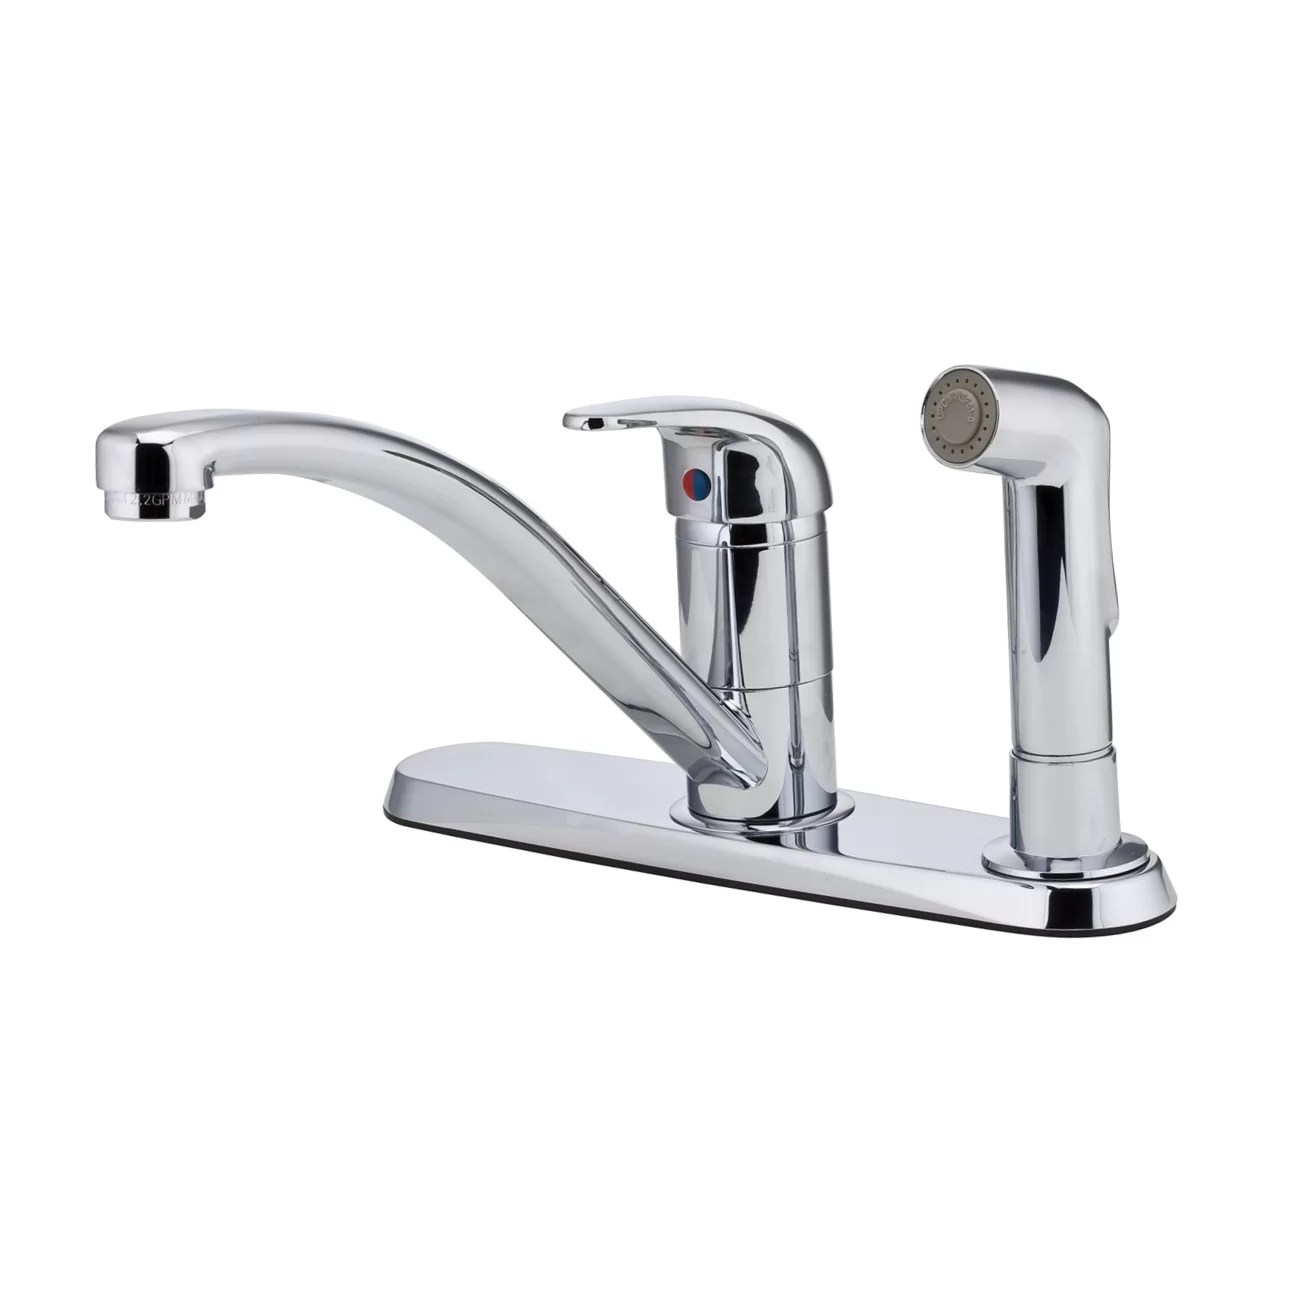 kitchen faucet with side spray funny gadgets pfister pfirst series single handle deck mounted